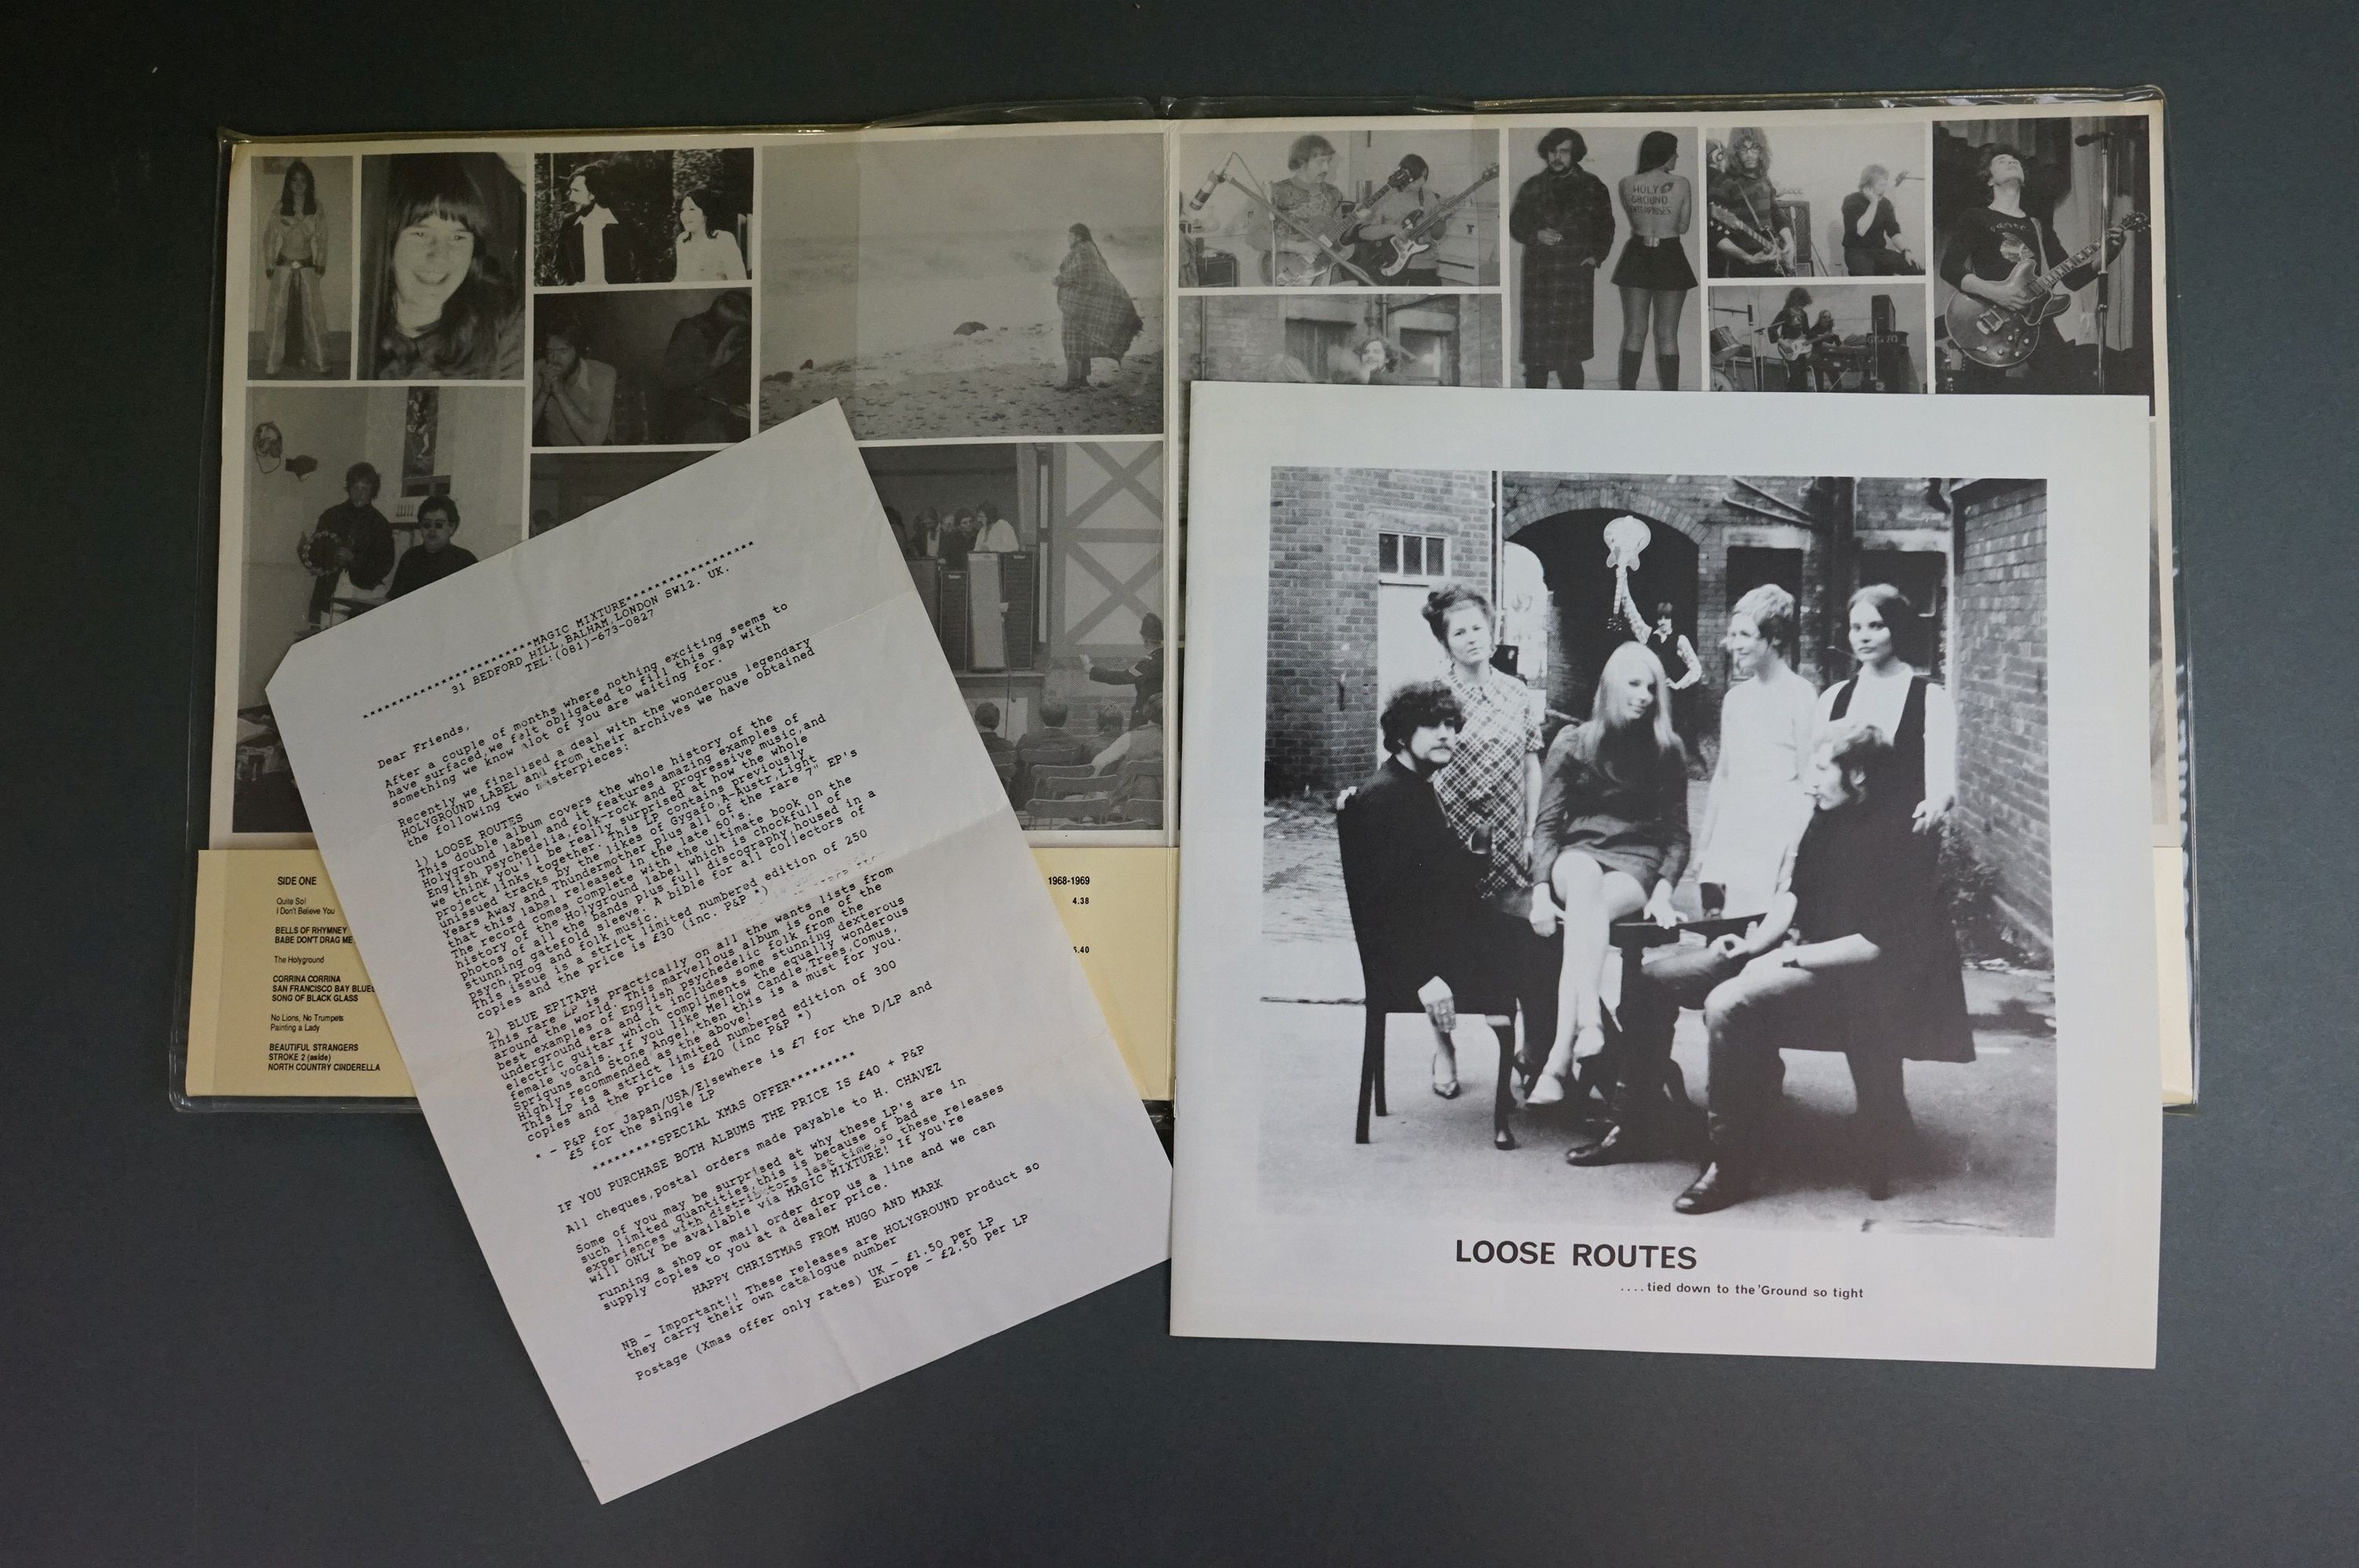 Vinyl - Compilation Loose Routers Music From Holyground 1966-1975 MG121 Double Album, 1991 - Image 3 of 6